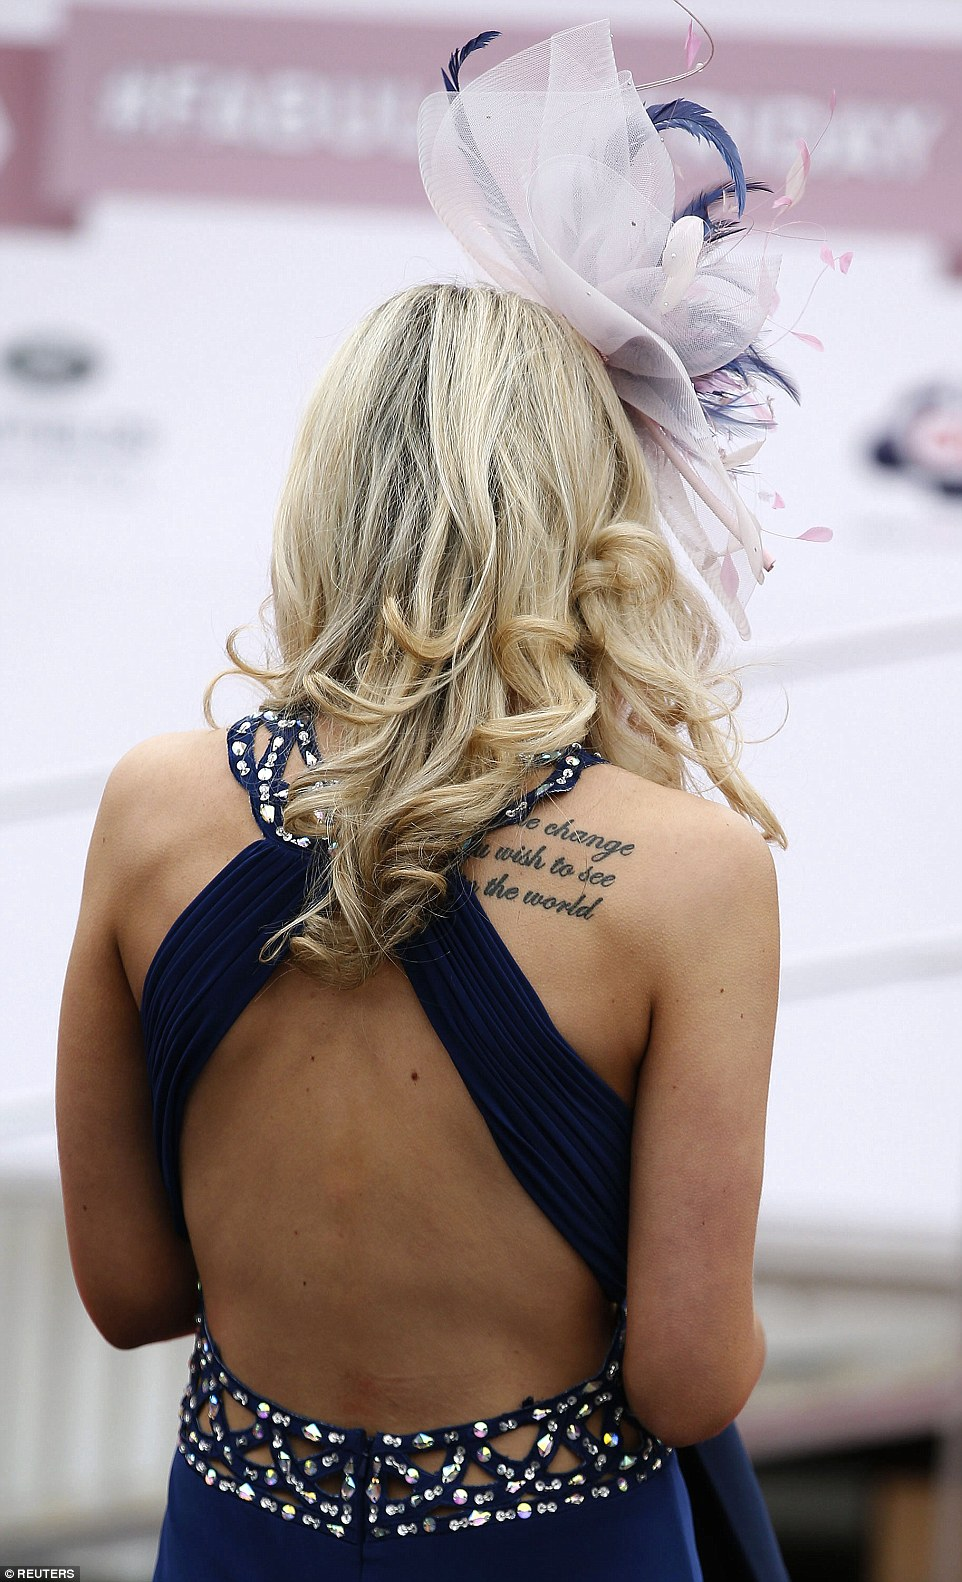 A woman displays her tattoo of Mahatma Gandhi's famous words: 'Be the change you wish to see in the world.'